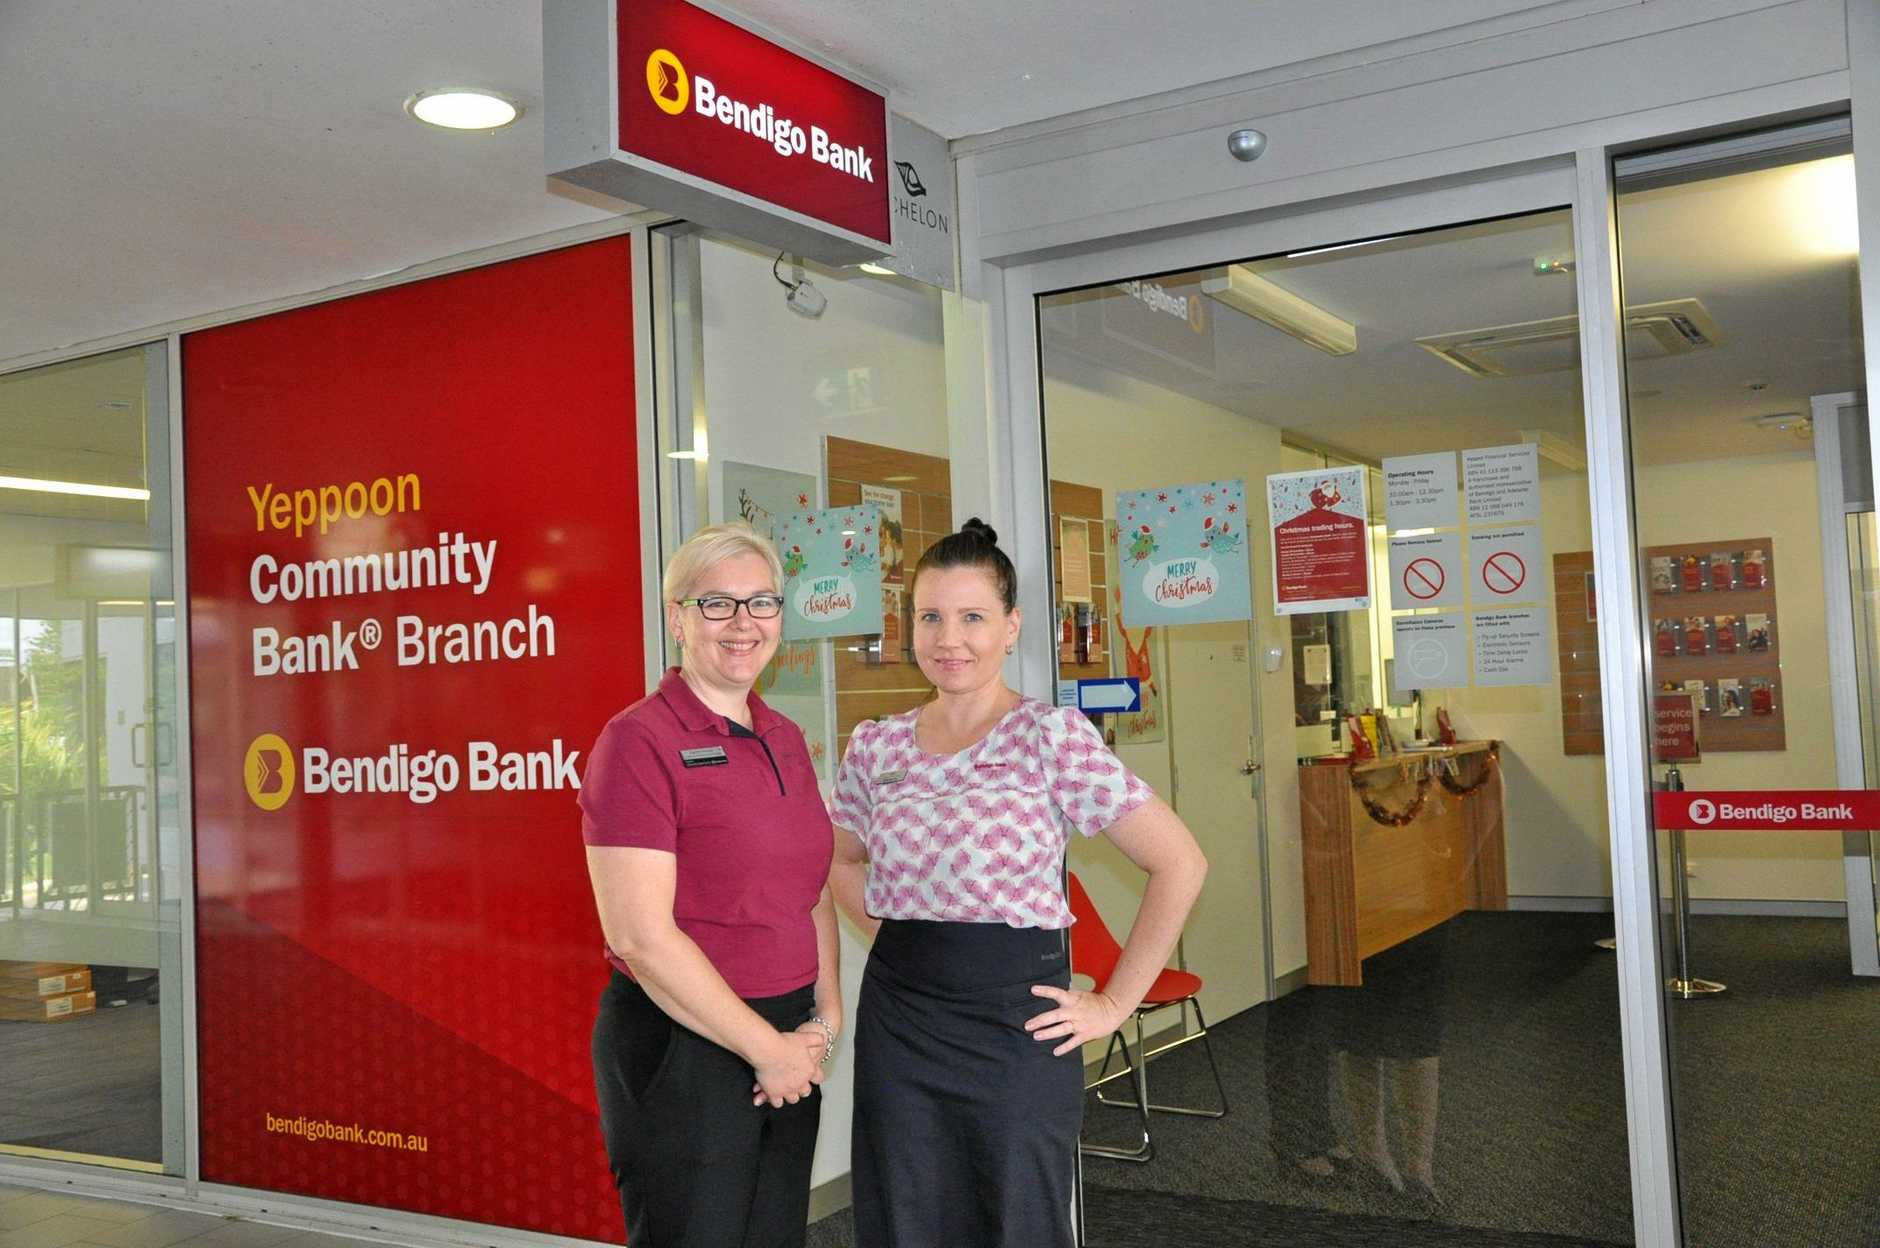 COME IN: Bendigo Bank has easy all-ability access from the undercover carpark at the Echelon building.